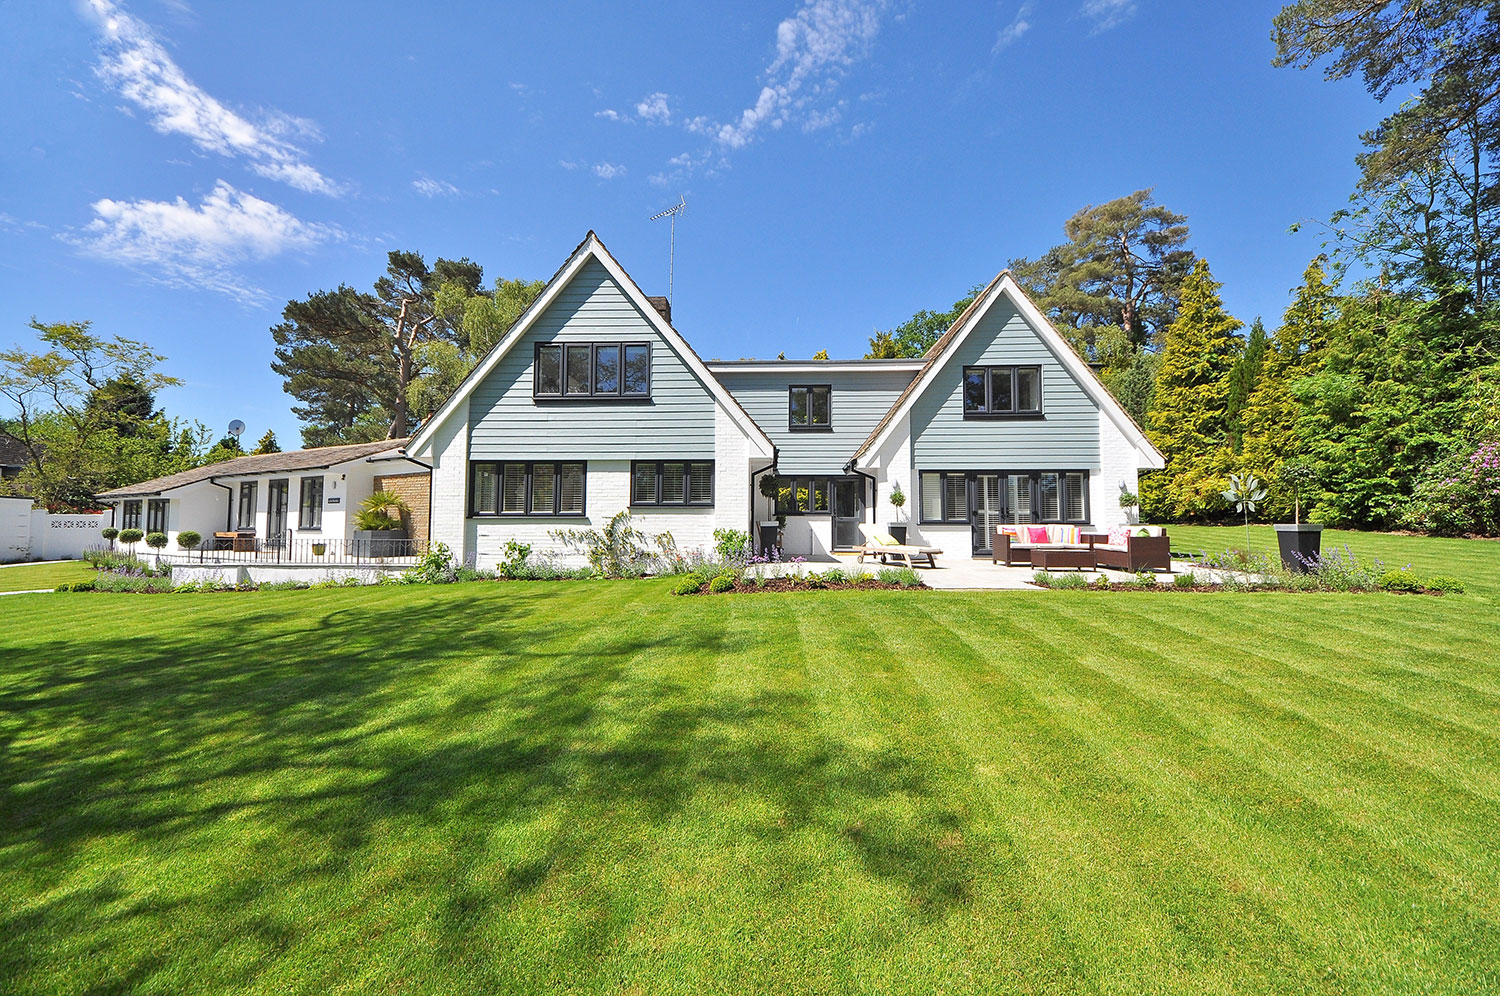 Detached white house with large, well-maintained yard.